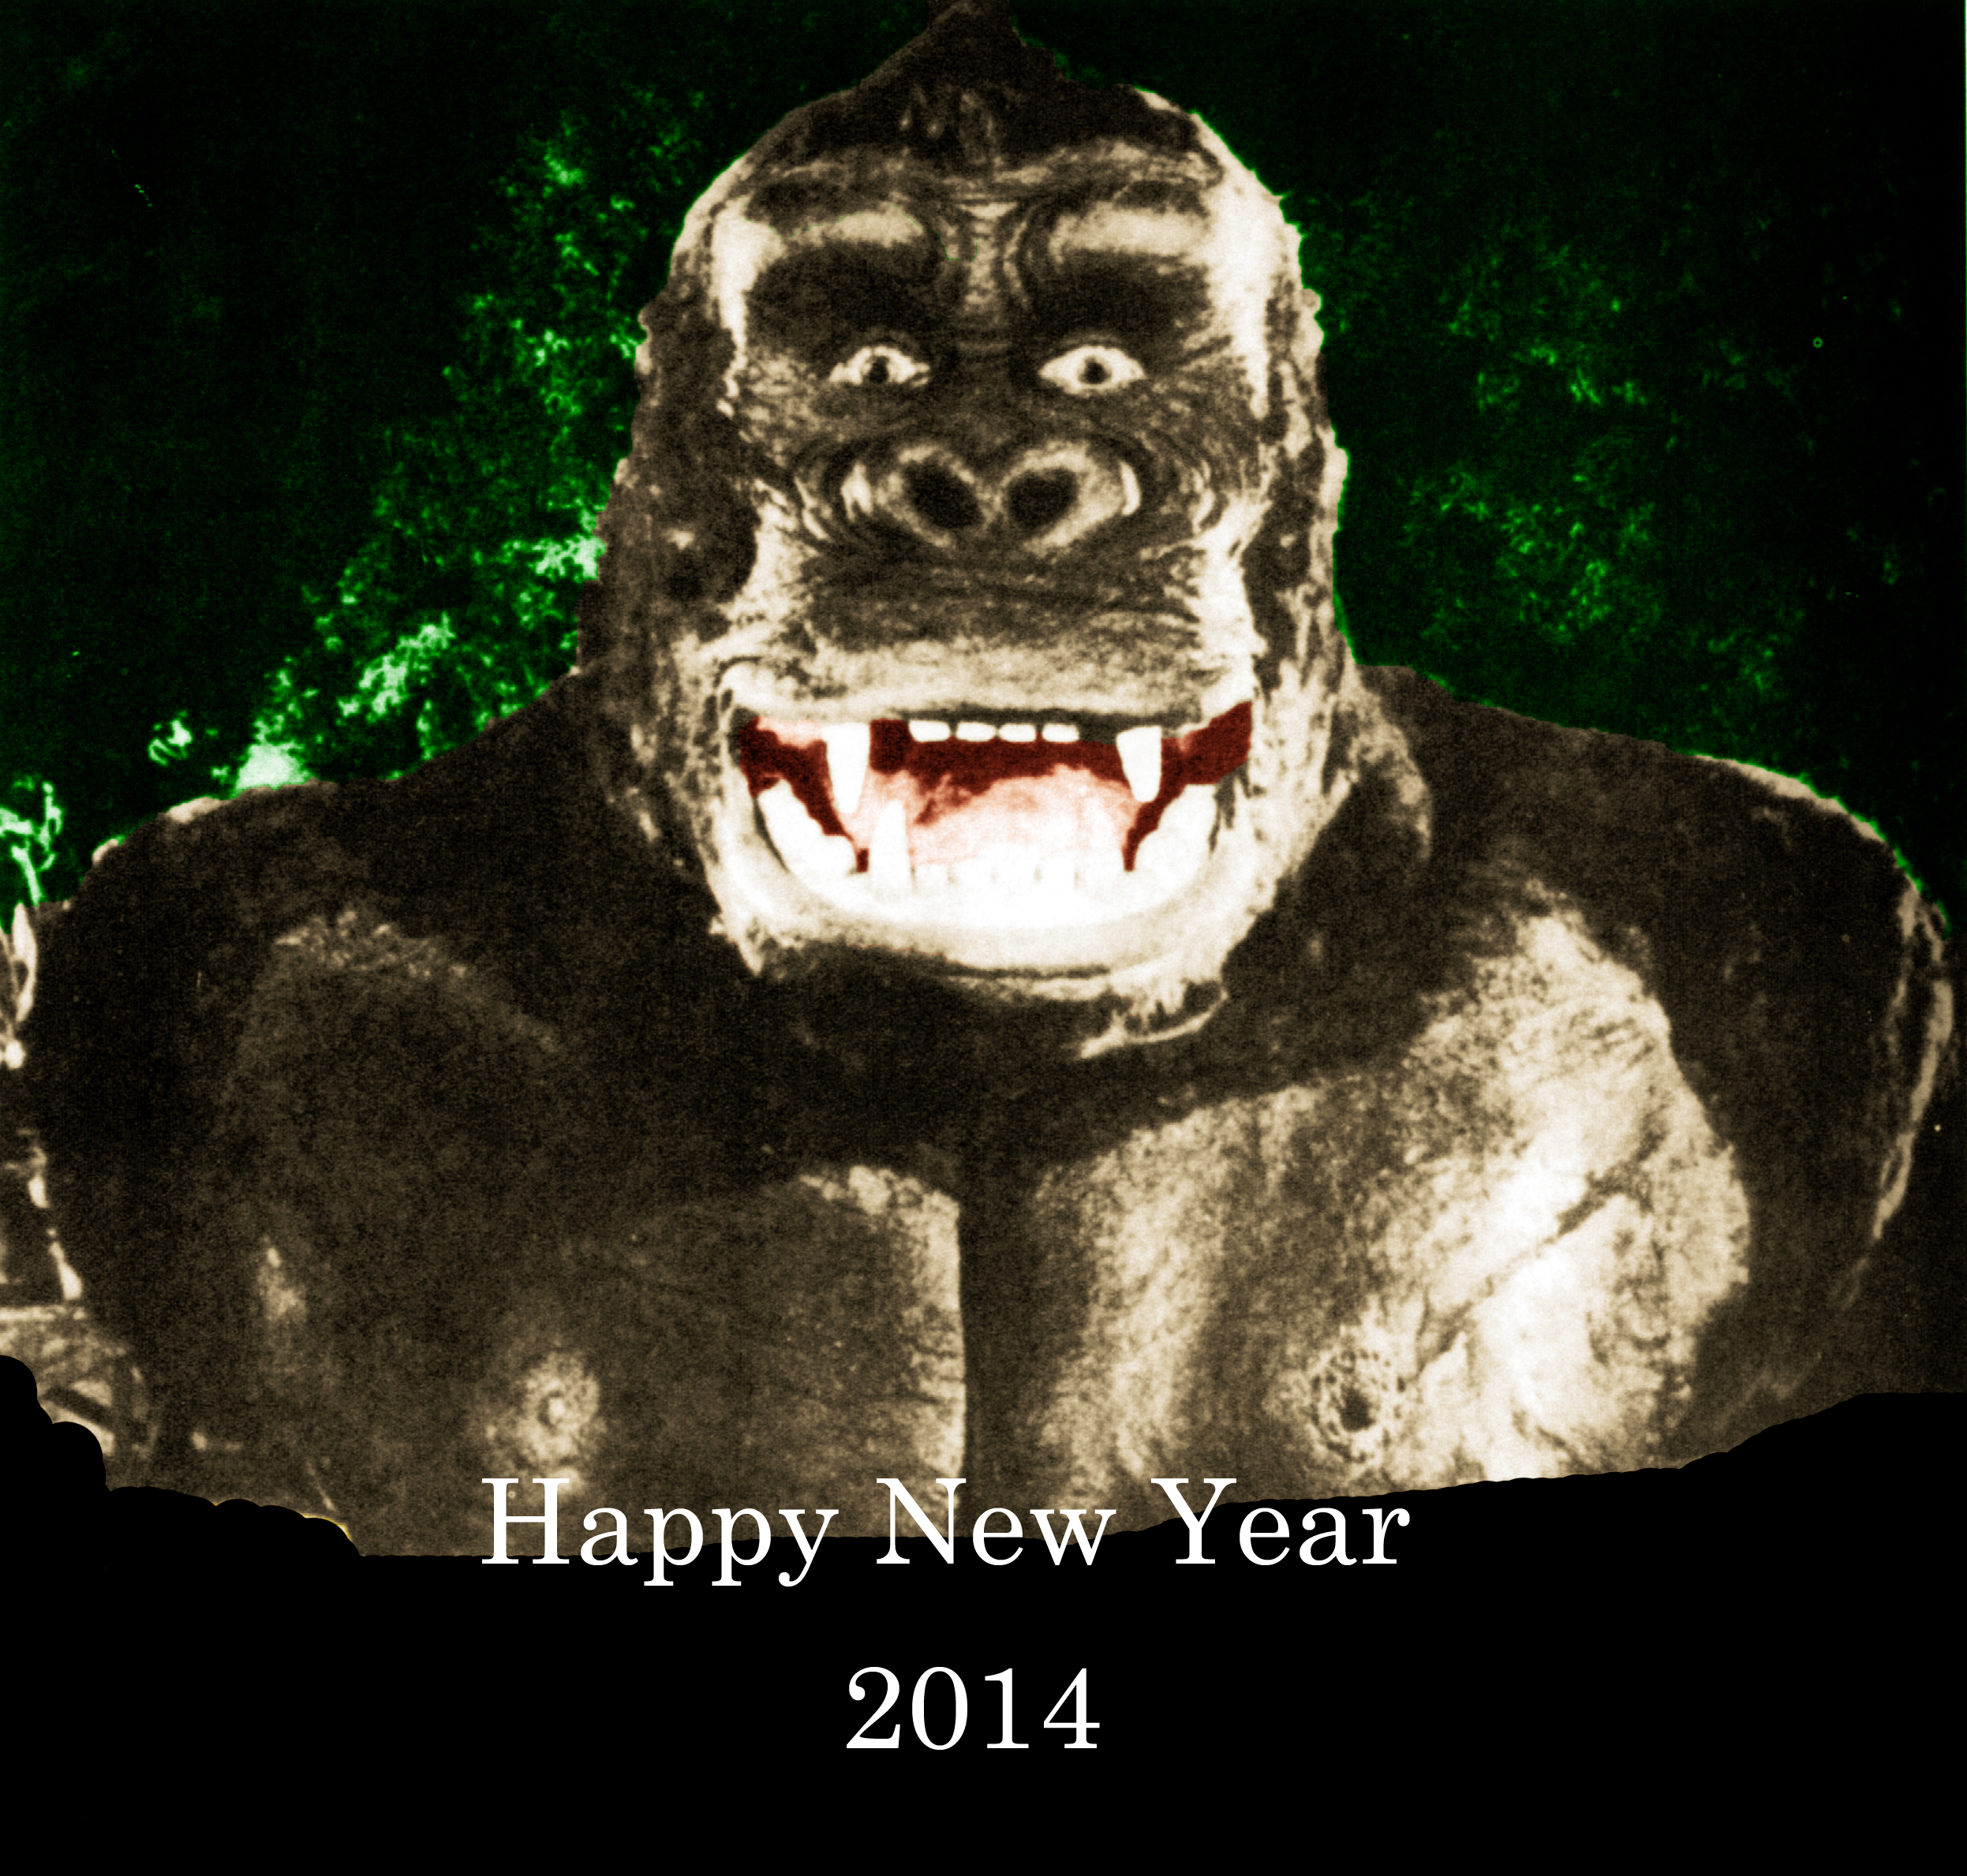 King Kong006 copy_New Year